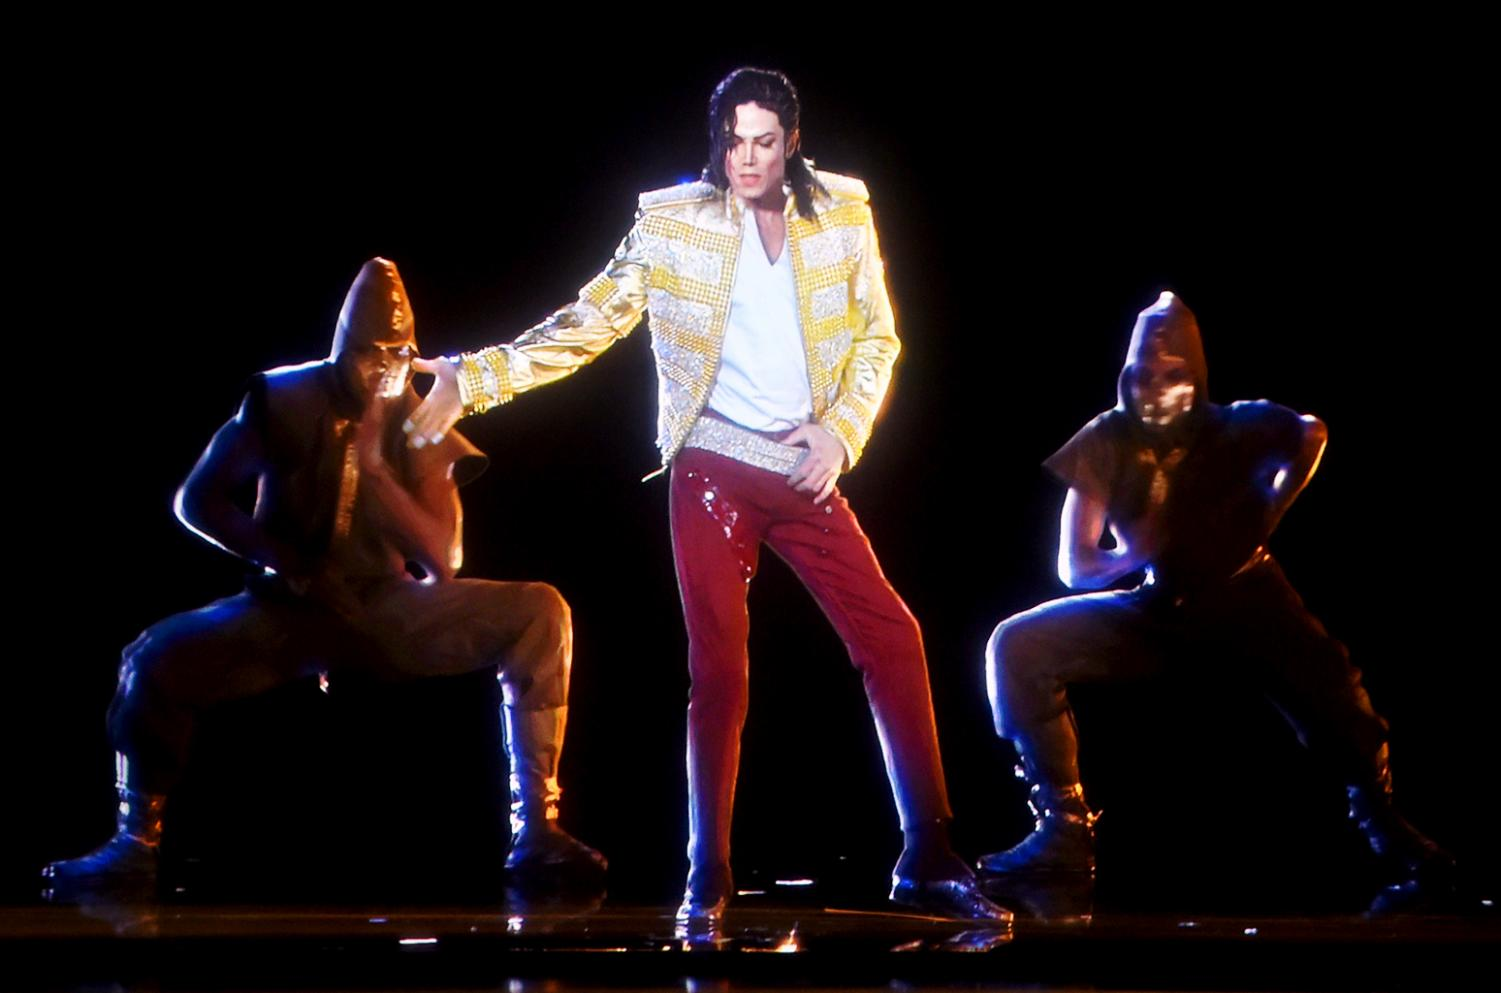 A hologram of Michael Jackson made an appearance at the 2014 Billboard Music Awards. This hologram performed his hit song